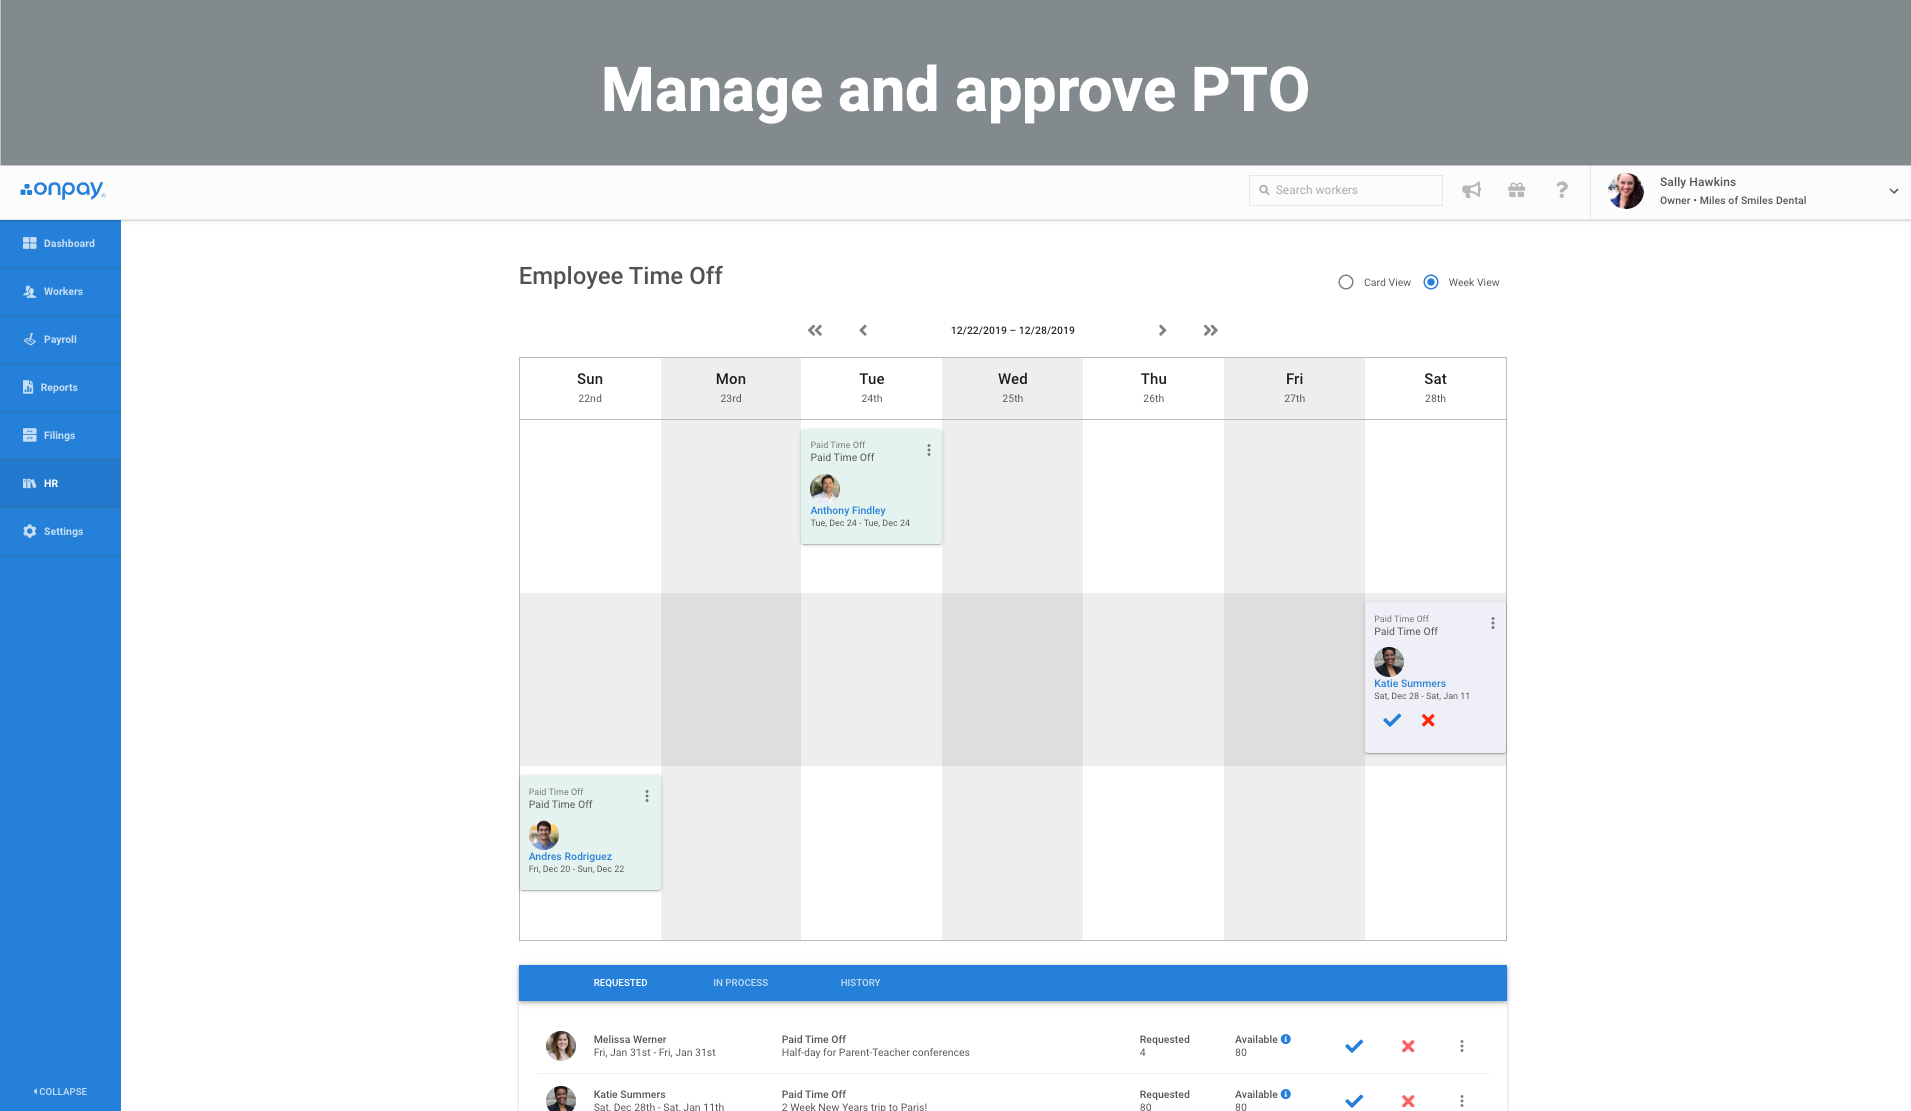 7 Manage and approve PTO